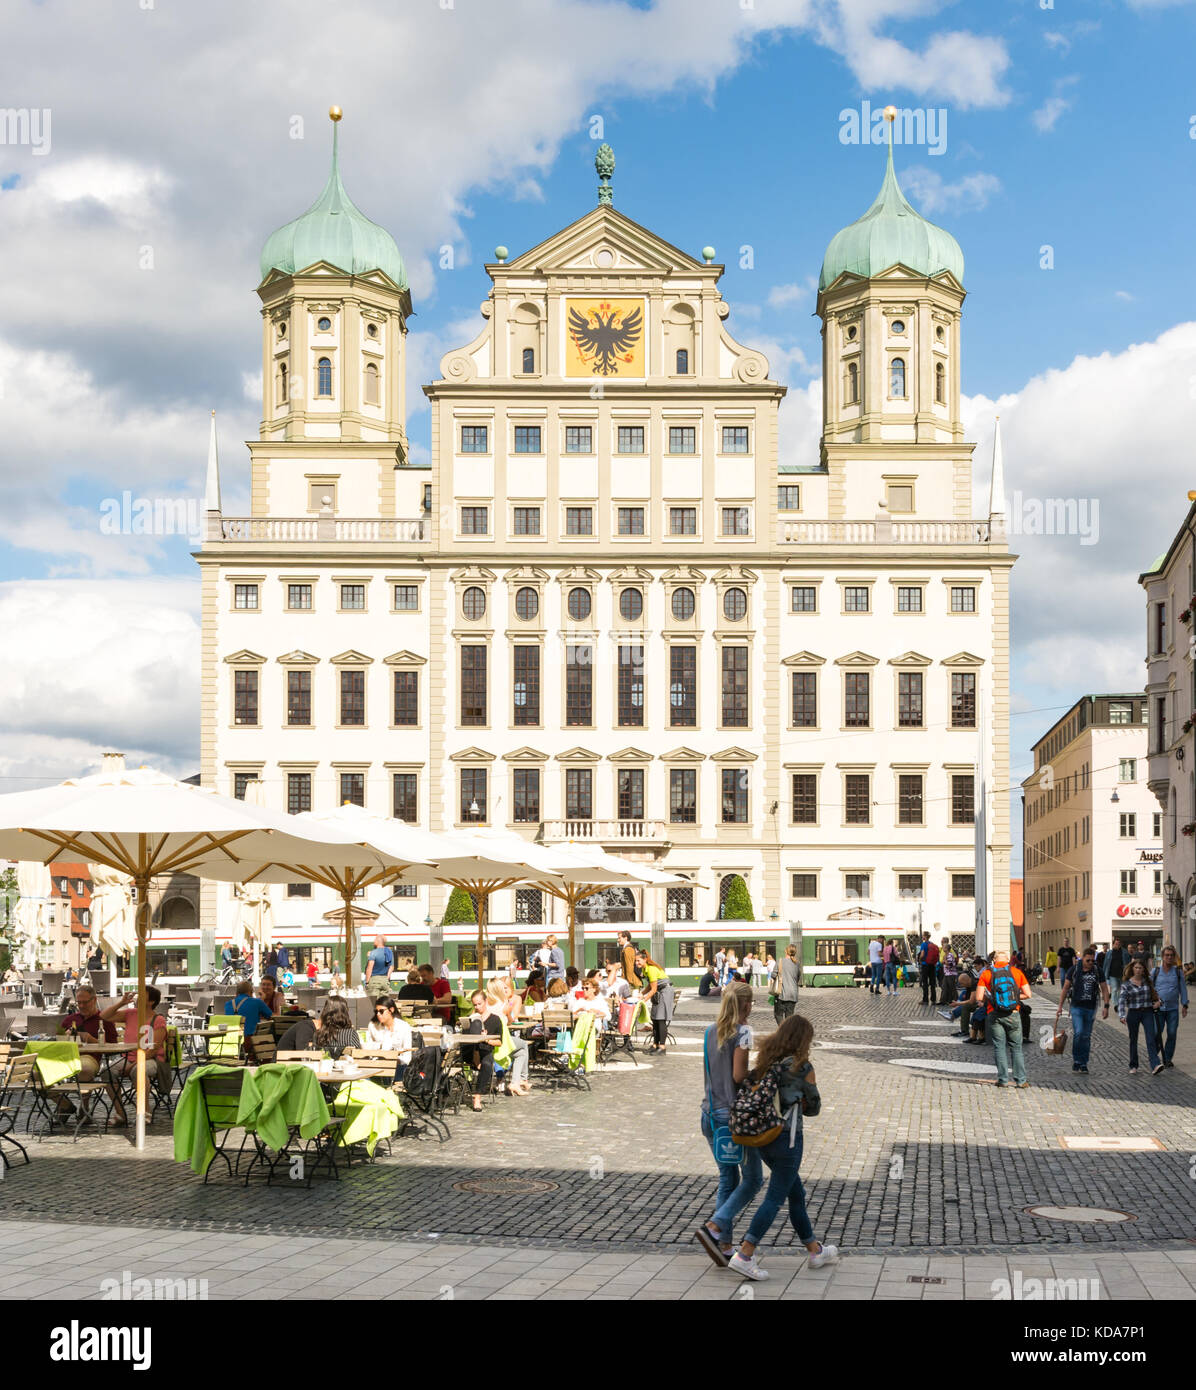 AUGSBURG, GERMANY - AUGUST 19: Tourists at the Rathausplatz in Augsburg, Germany on August 19, 2017. Augsburg is - Stock Image